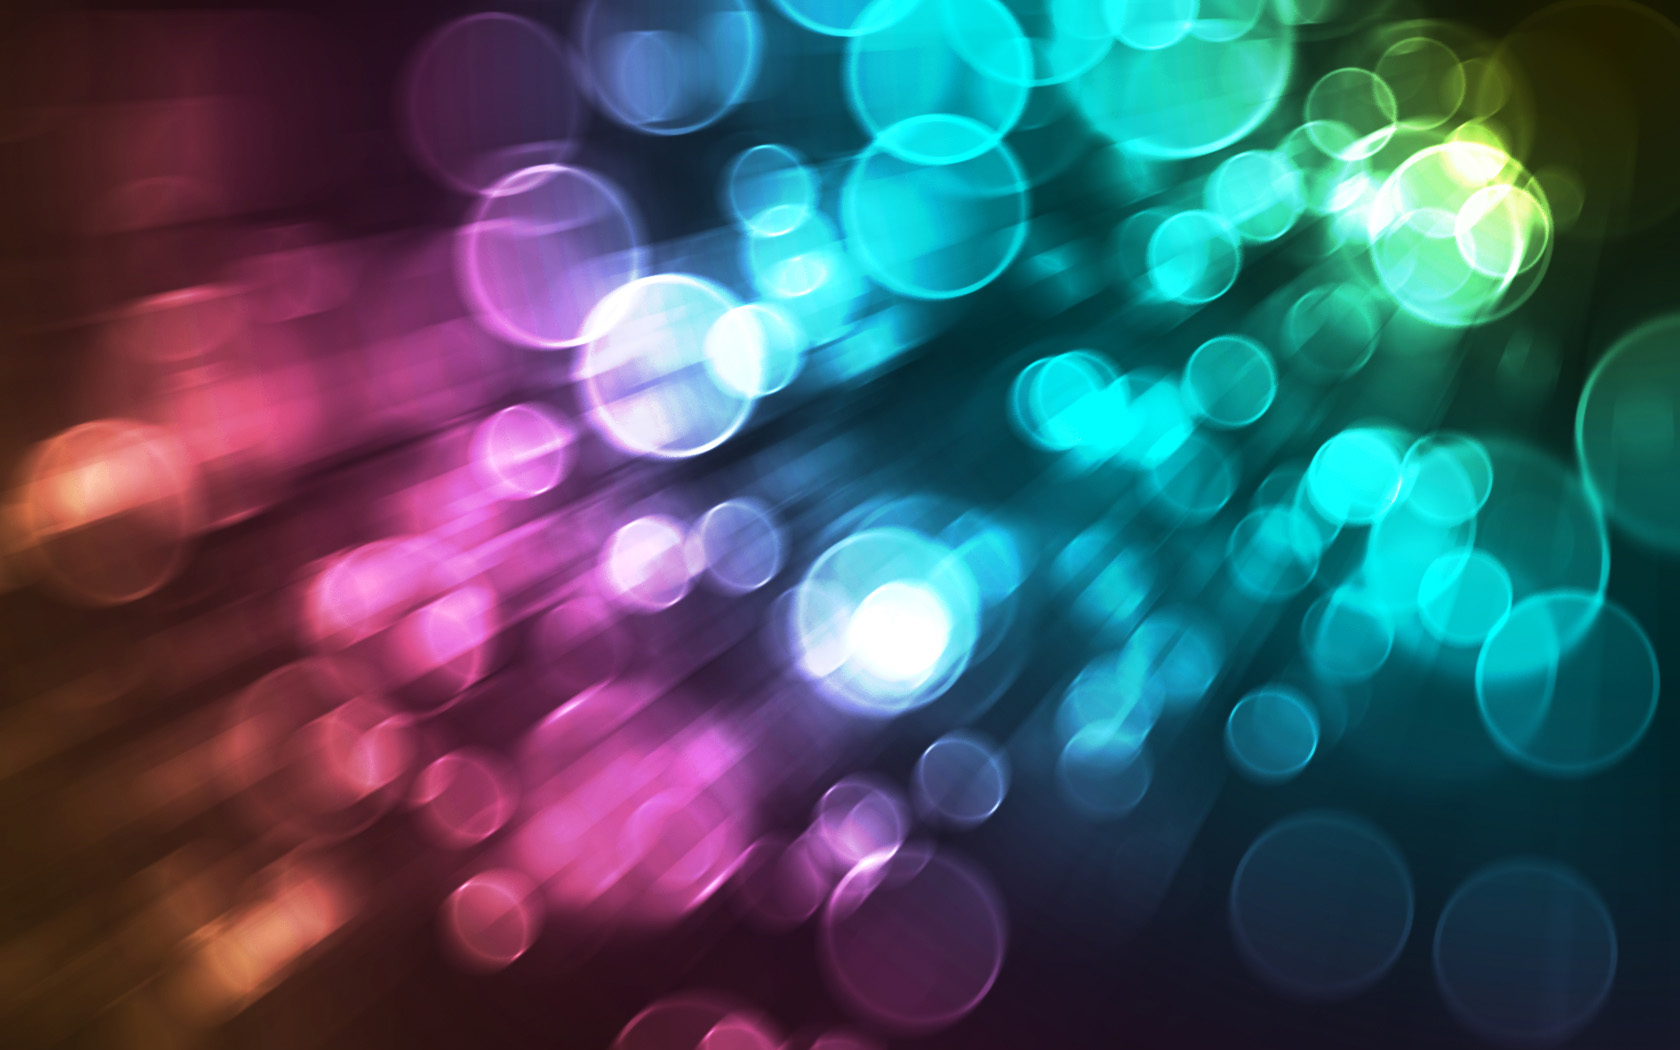 cool background 005 210x131 vector cool background 005 1680x1050